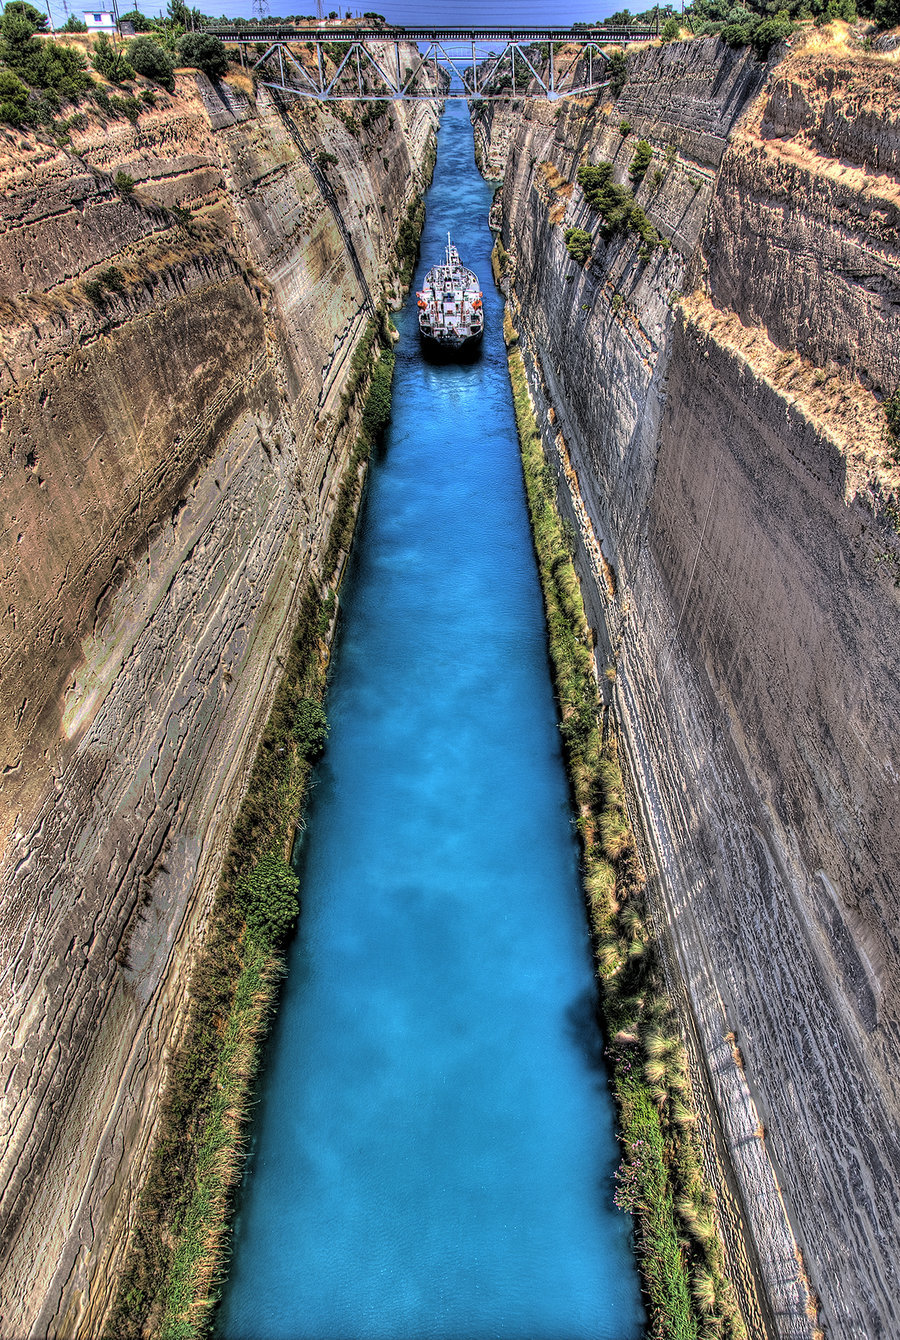 gotraveling:  The Isthmus of Corinth Canal, Greece ~by ^StamatisGR A isthmus is a narrow land bridge which connects the Peloponnese peninsula with the mainland.